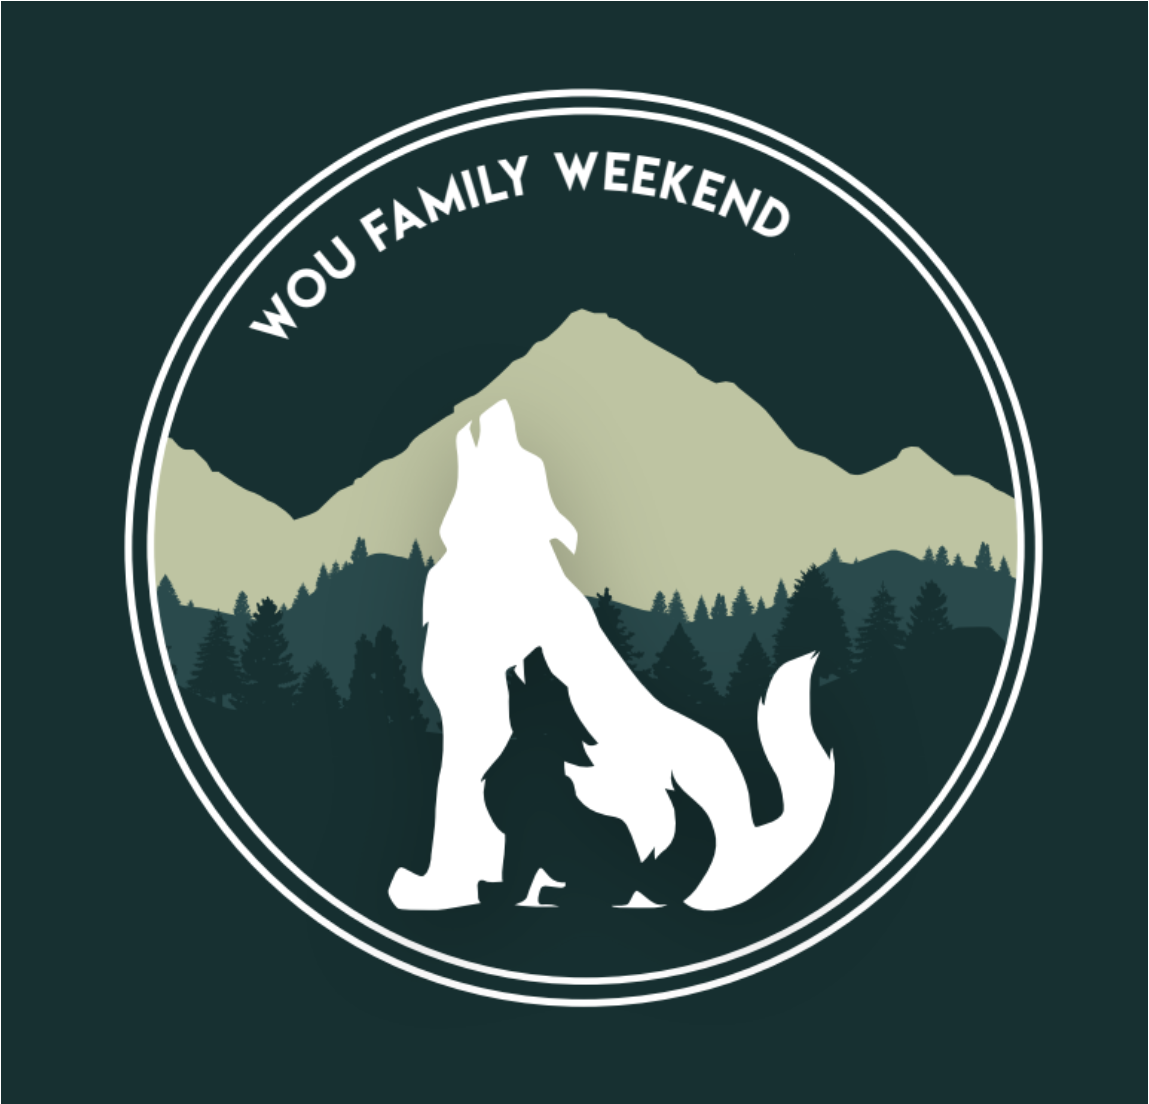 Family Weekend design with wolves, mountains and trees in background